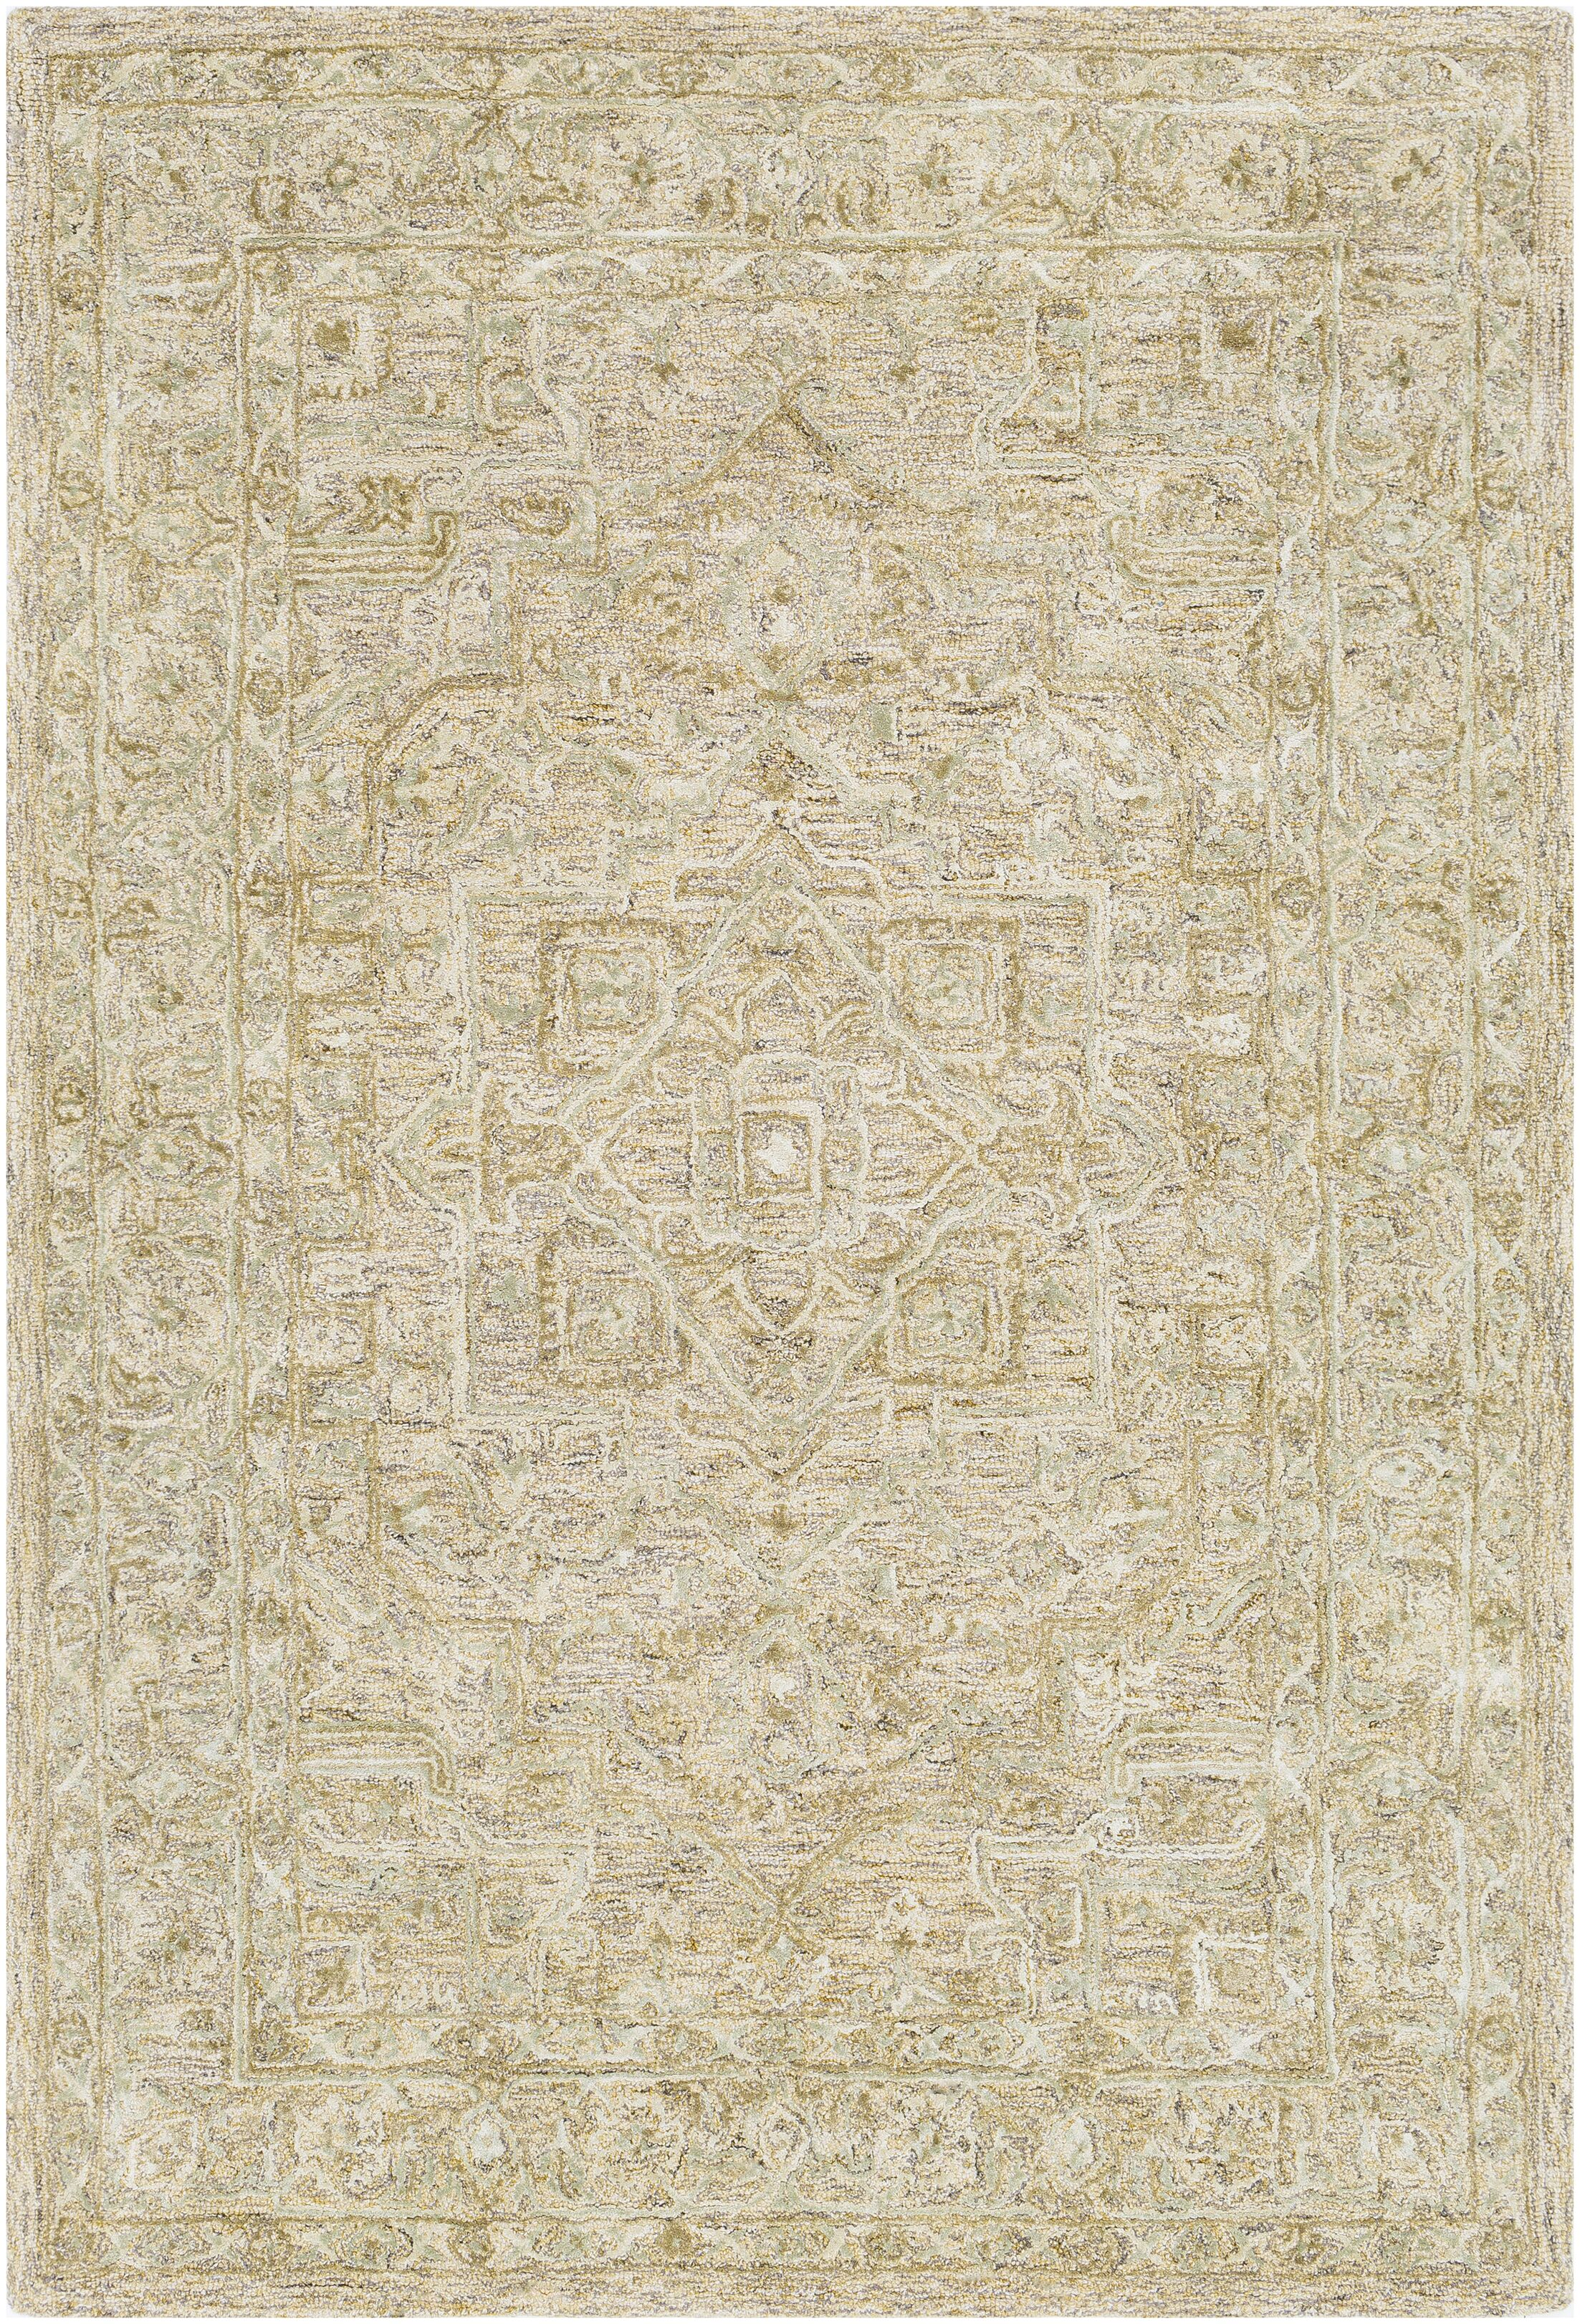 Jambi Traditional Hand Tufted Wool Tan/Beige Area Rug Rug Size: Rectangle 5' x 7'6